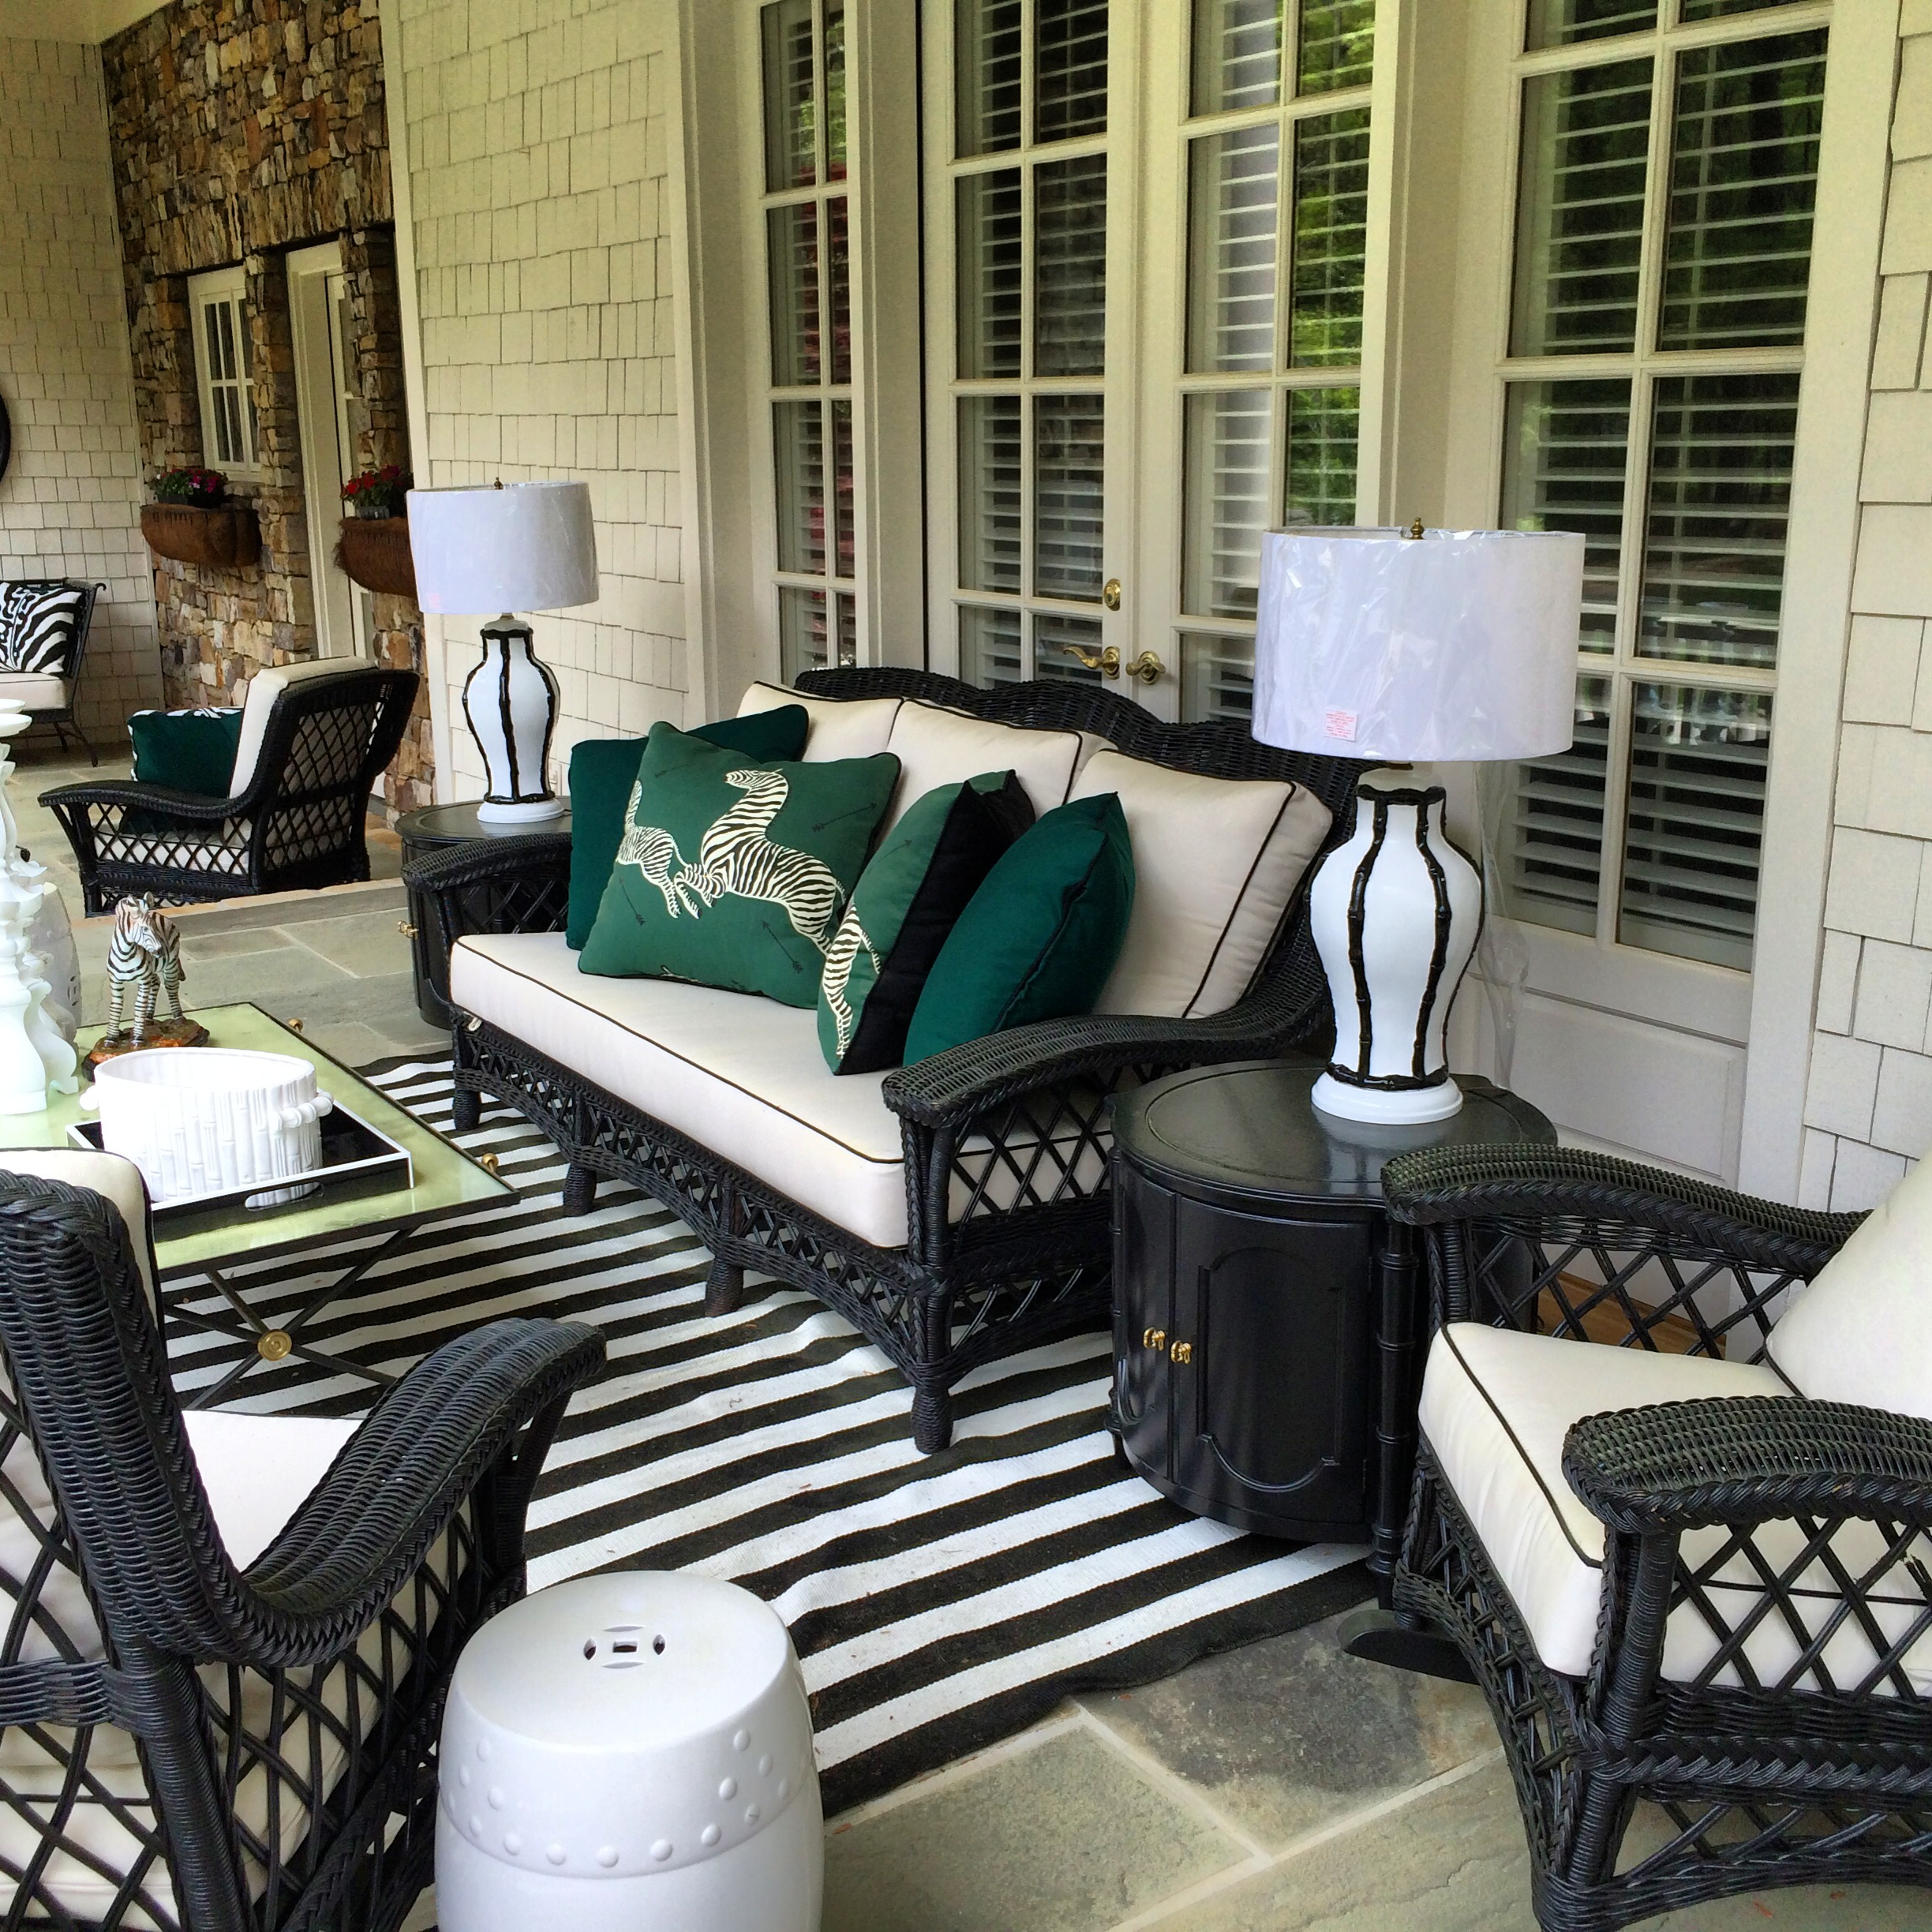 Palm Beach is all about outdoor living